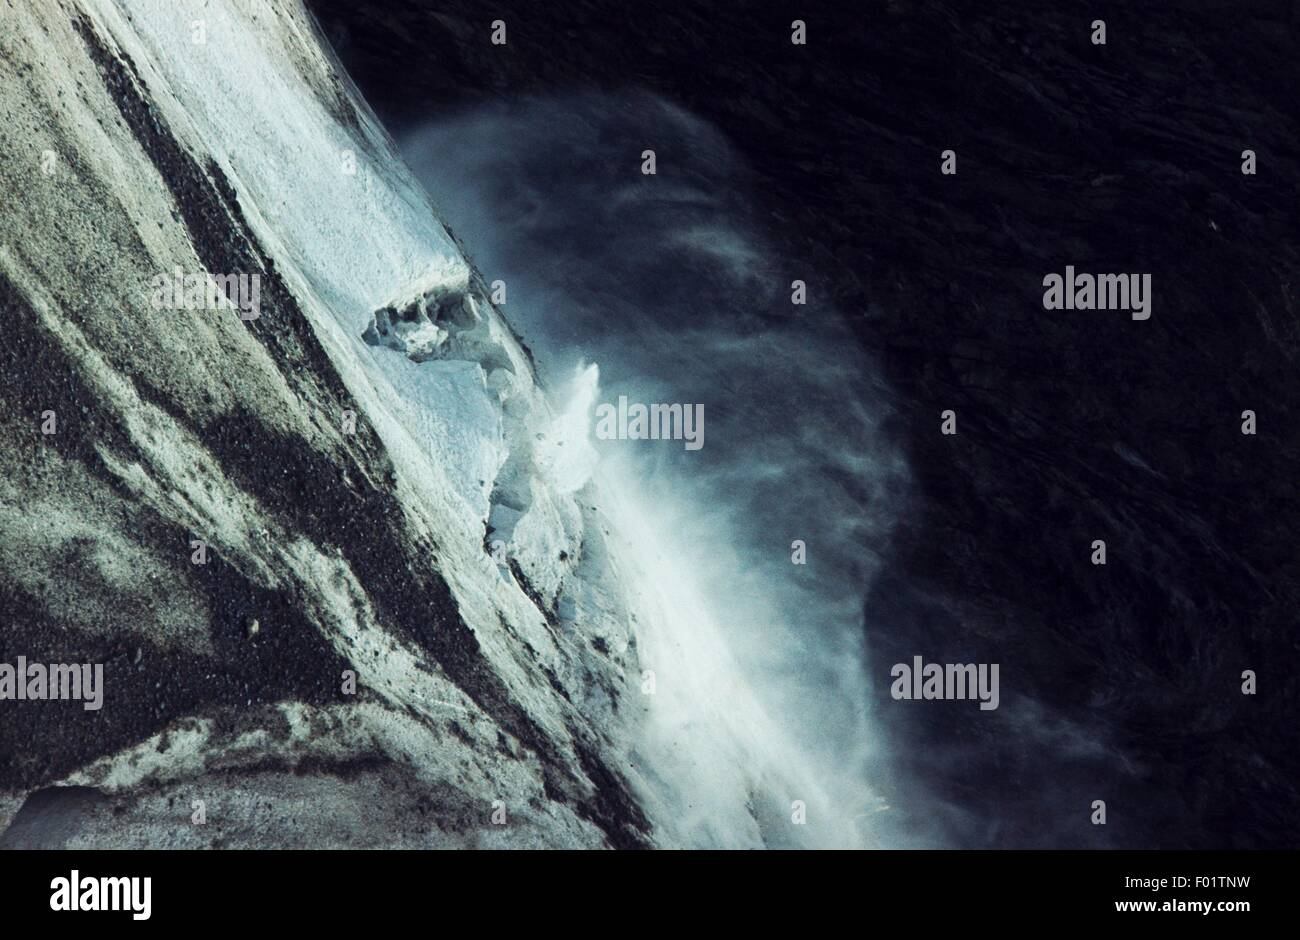 Avalanche on the Miage glacier, Mont Blanc, Valle d'Aosta (Western Alps), Italy. Stock Photo